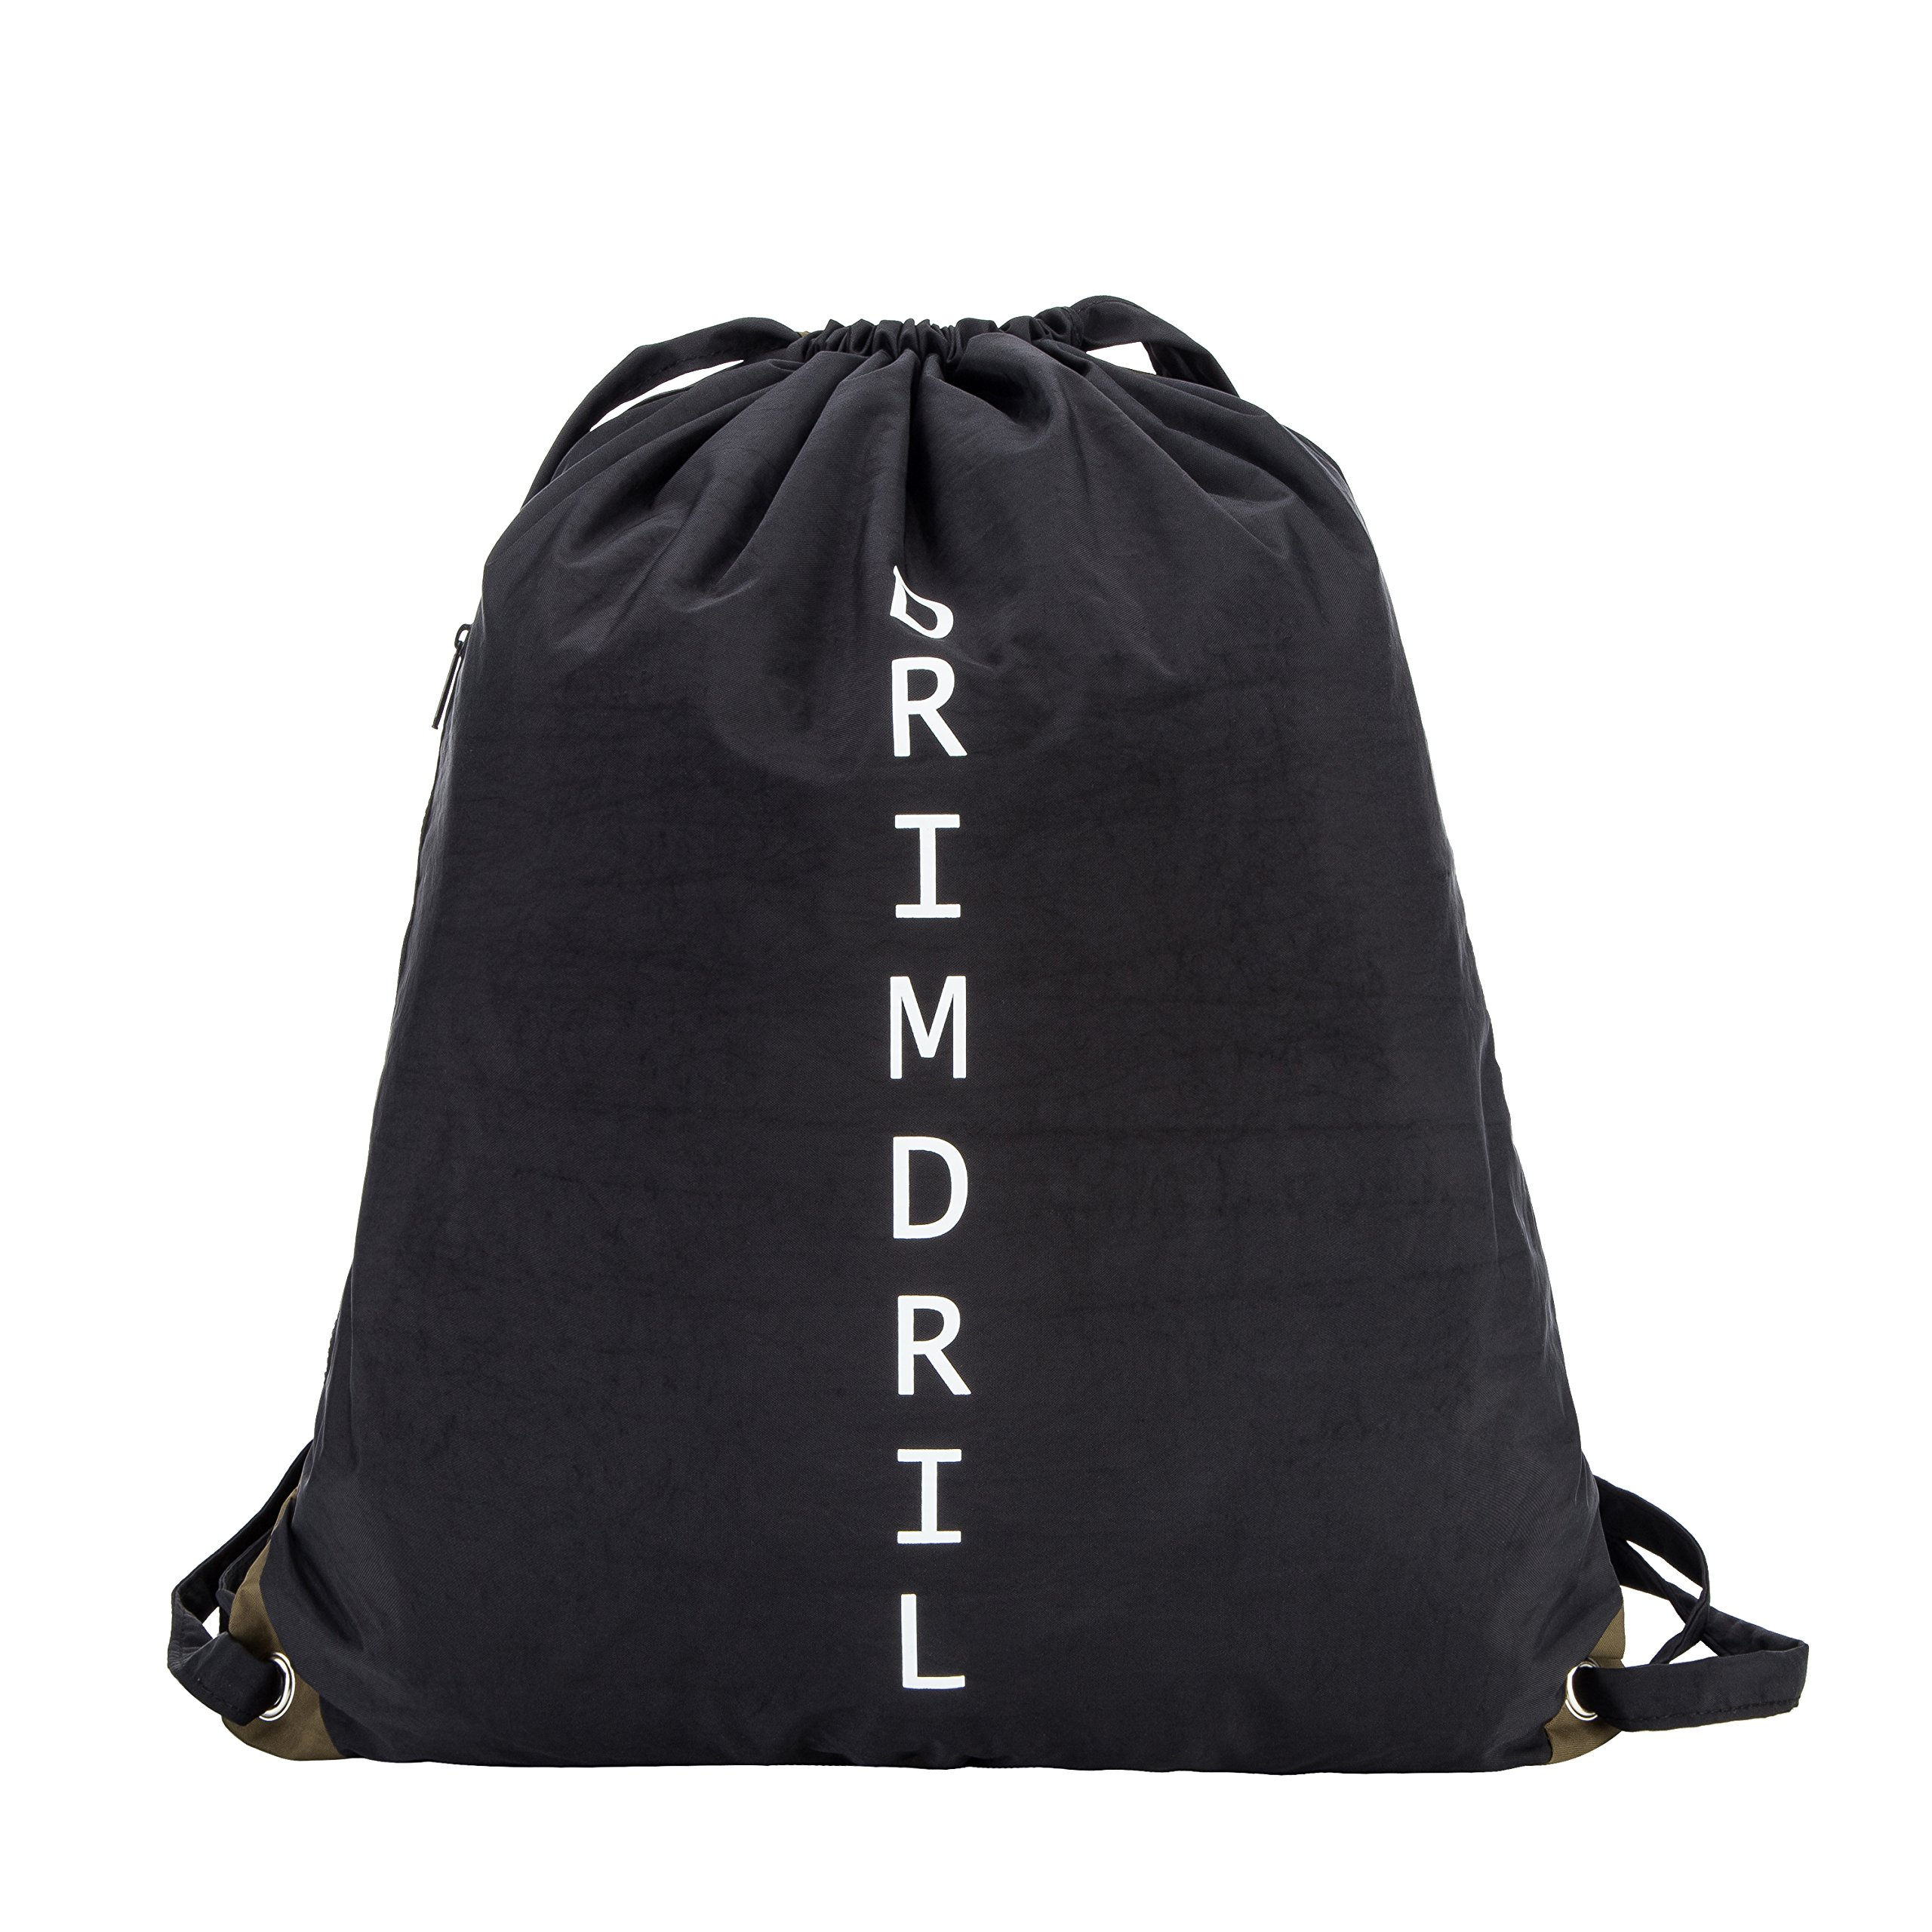 DRIMDRIL Waterproof Drawstring Dry Bag Backpack, Including Welded EVA Clean Clothes Pouch and Easy Access Side Zippered Pocket-Perfect for Swimming, Fishing, Gym, Beach and Other Outdoor Sports